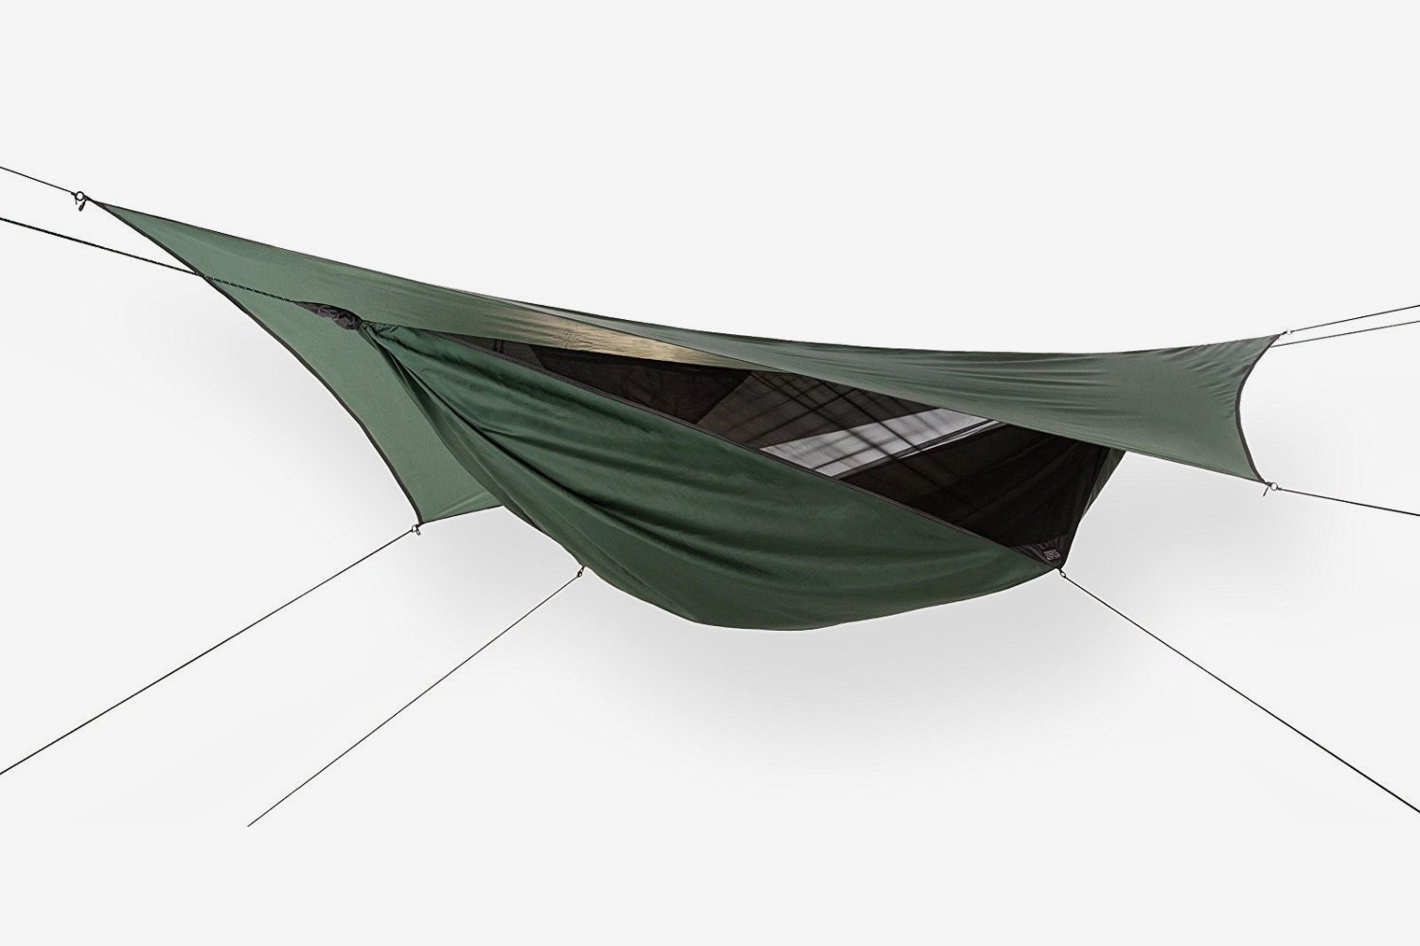 Hennessy Hammock Expedition Series — Lightweight Camping and Survival Shelter